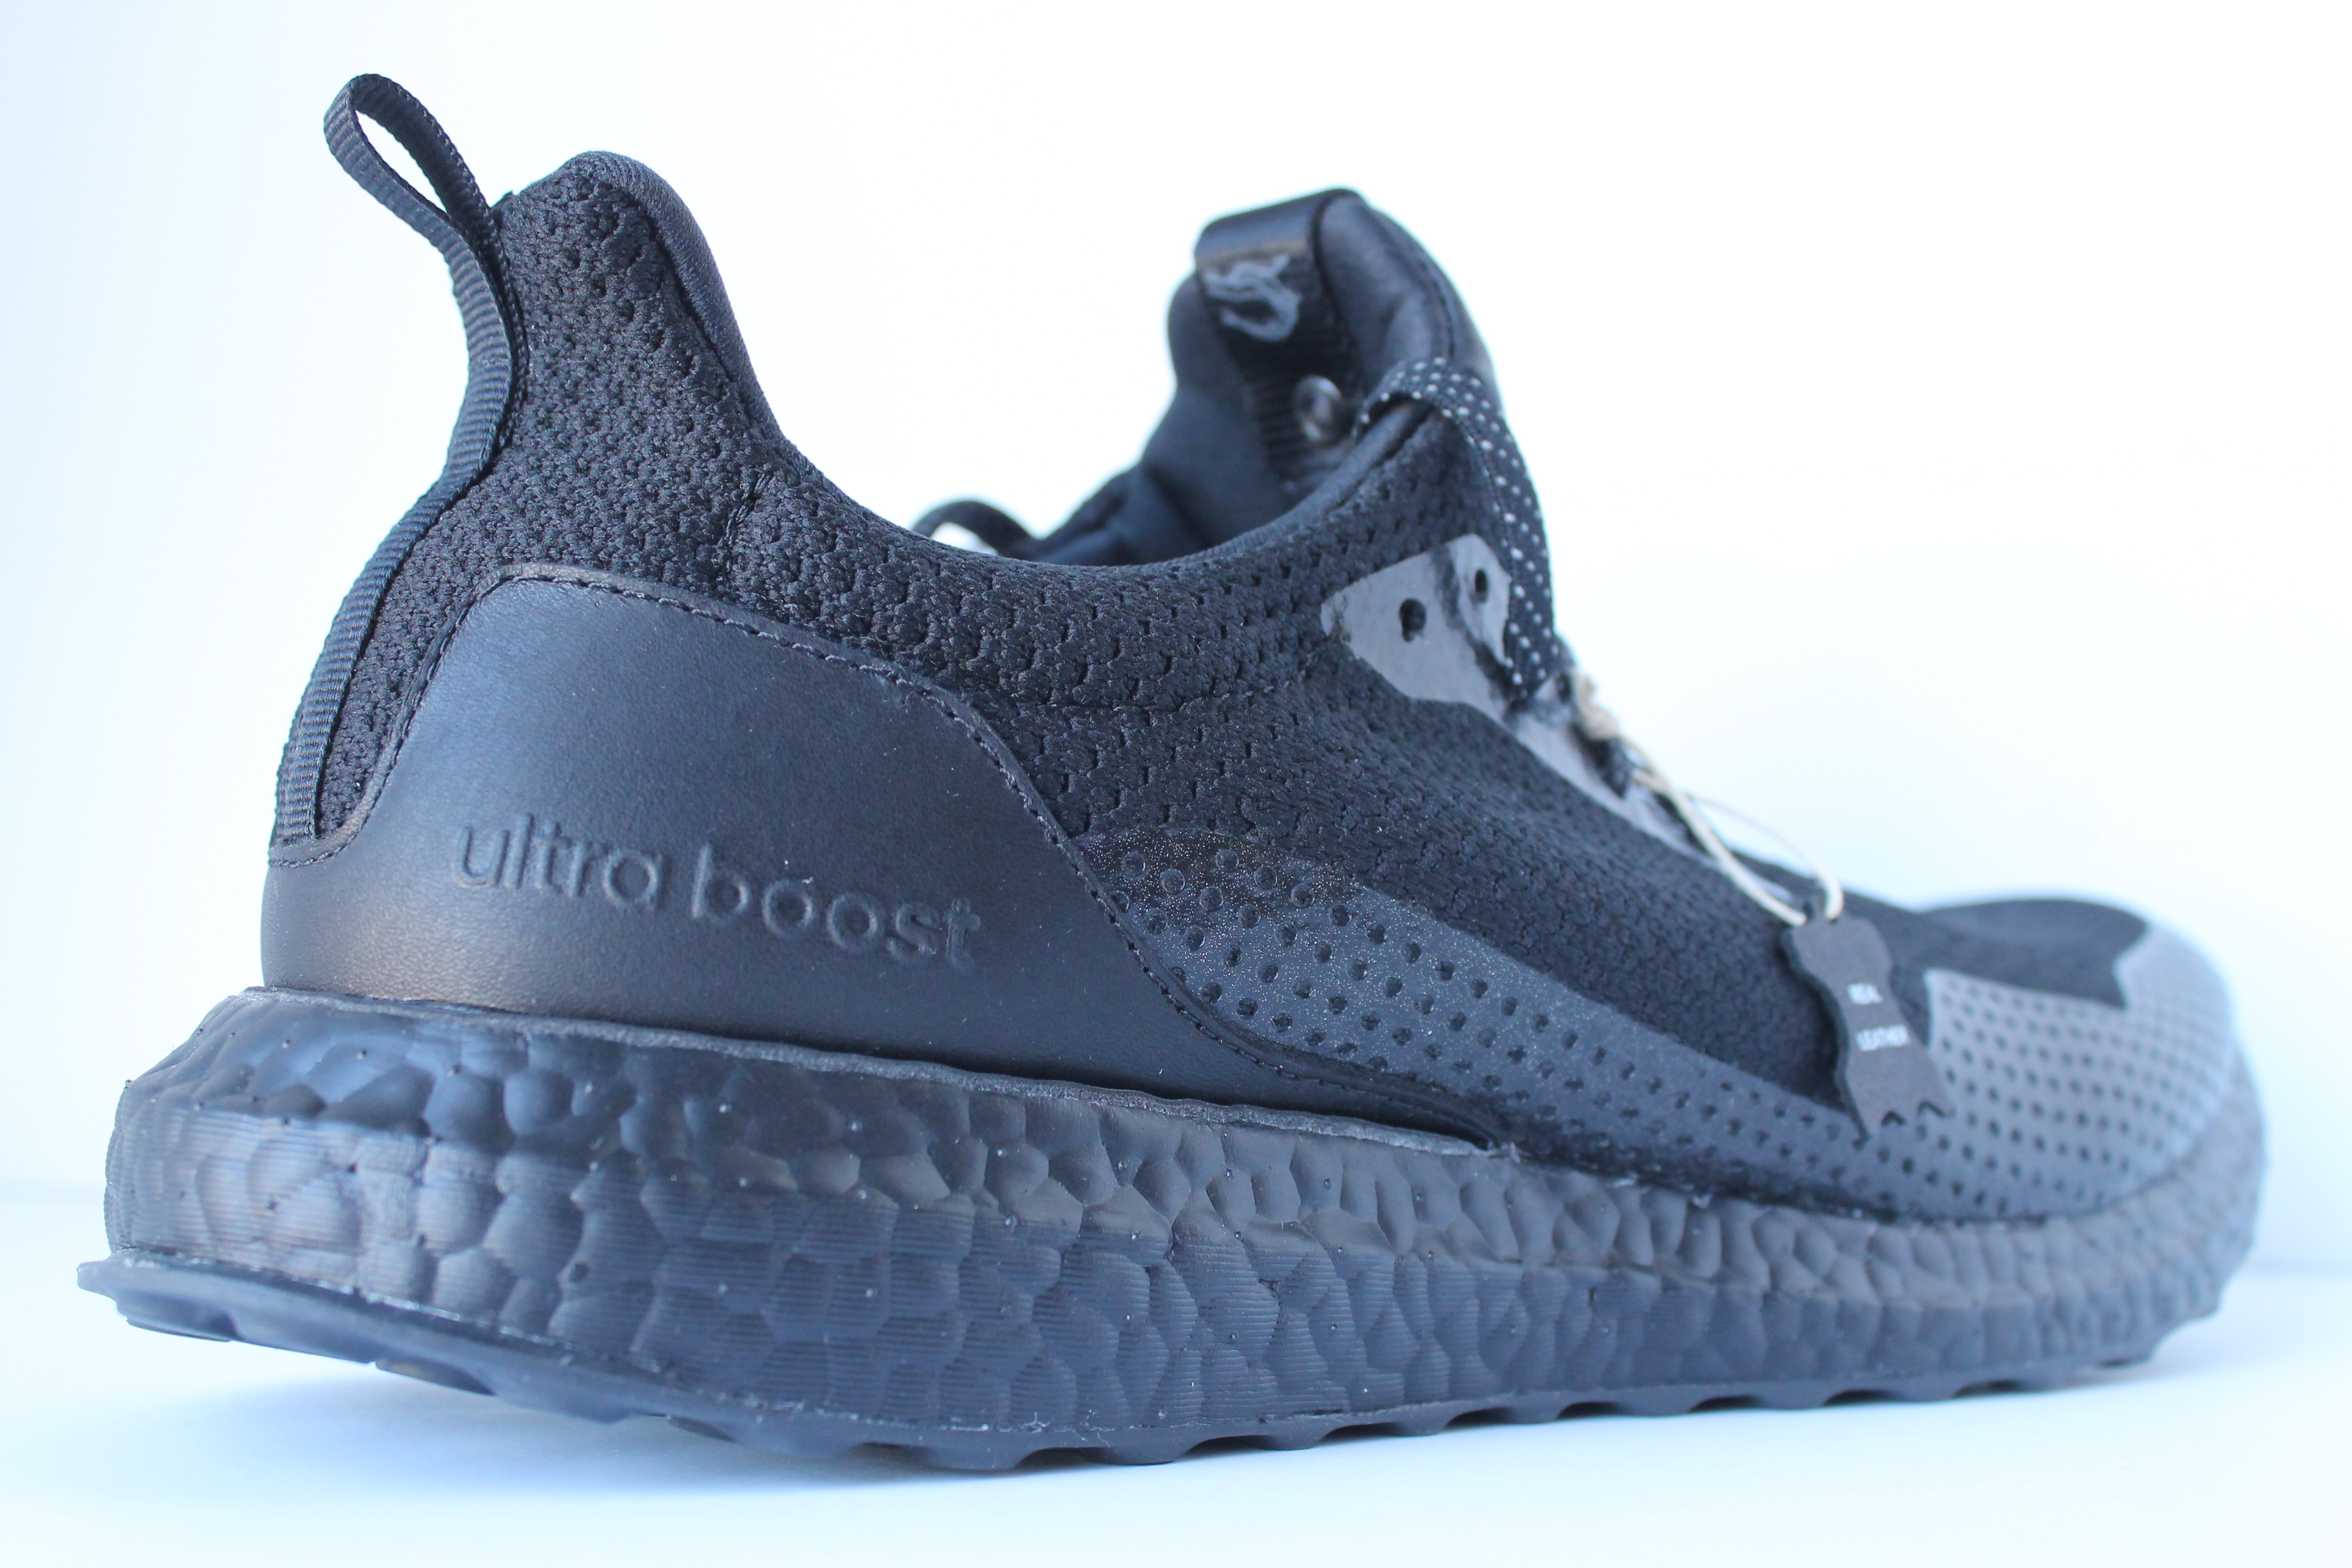 86a8dfe3 ... Adidas Ultra Boost Uncaged Haven – Triple Black ...